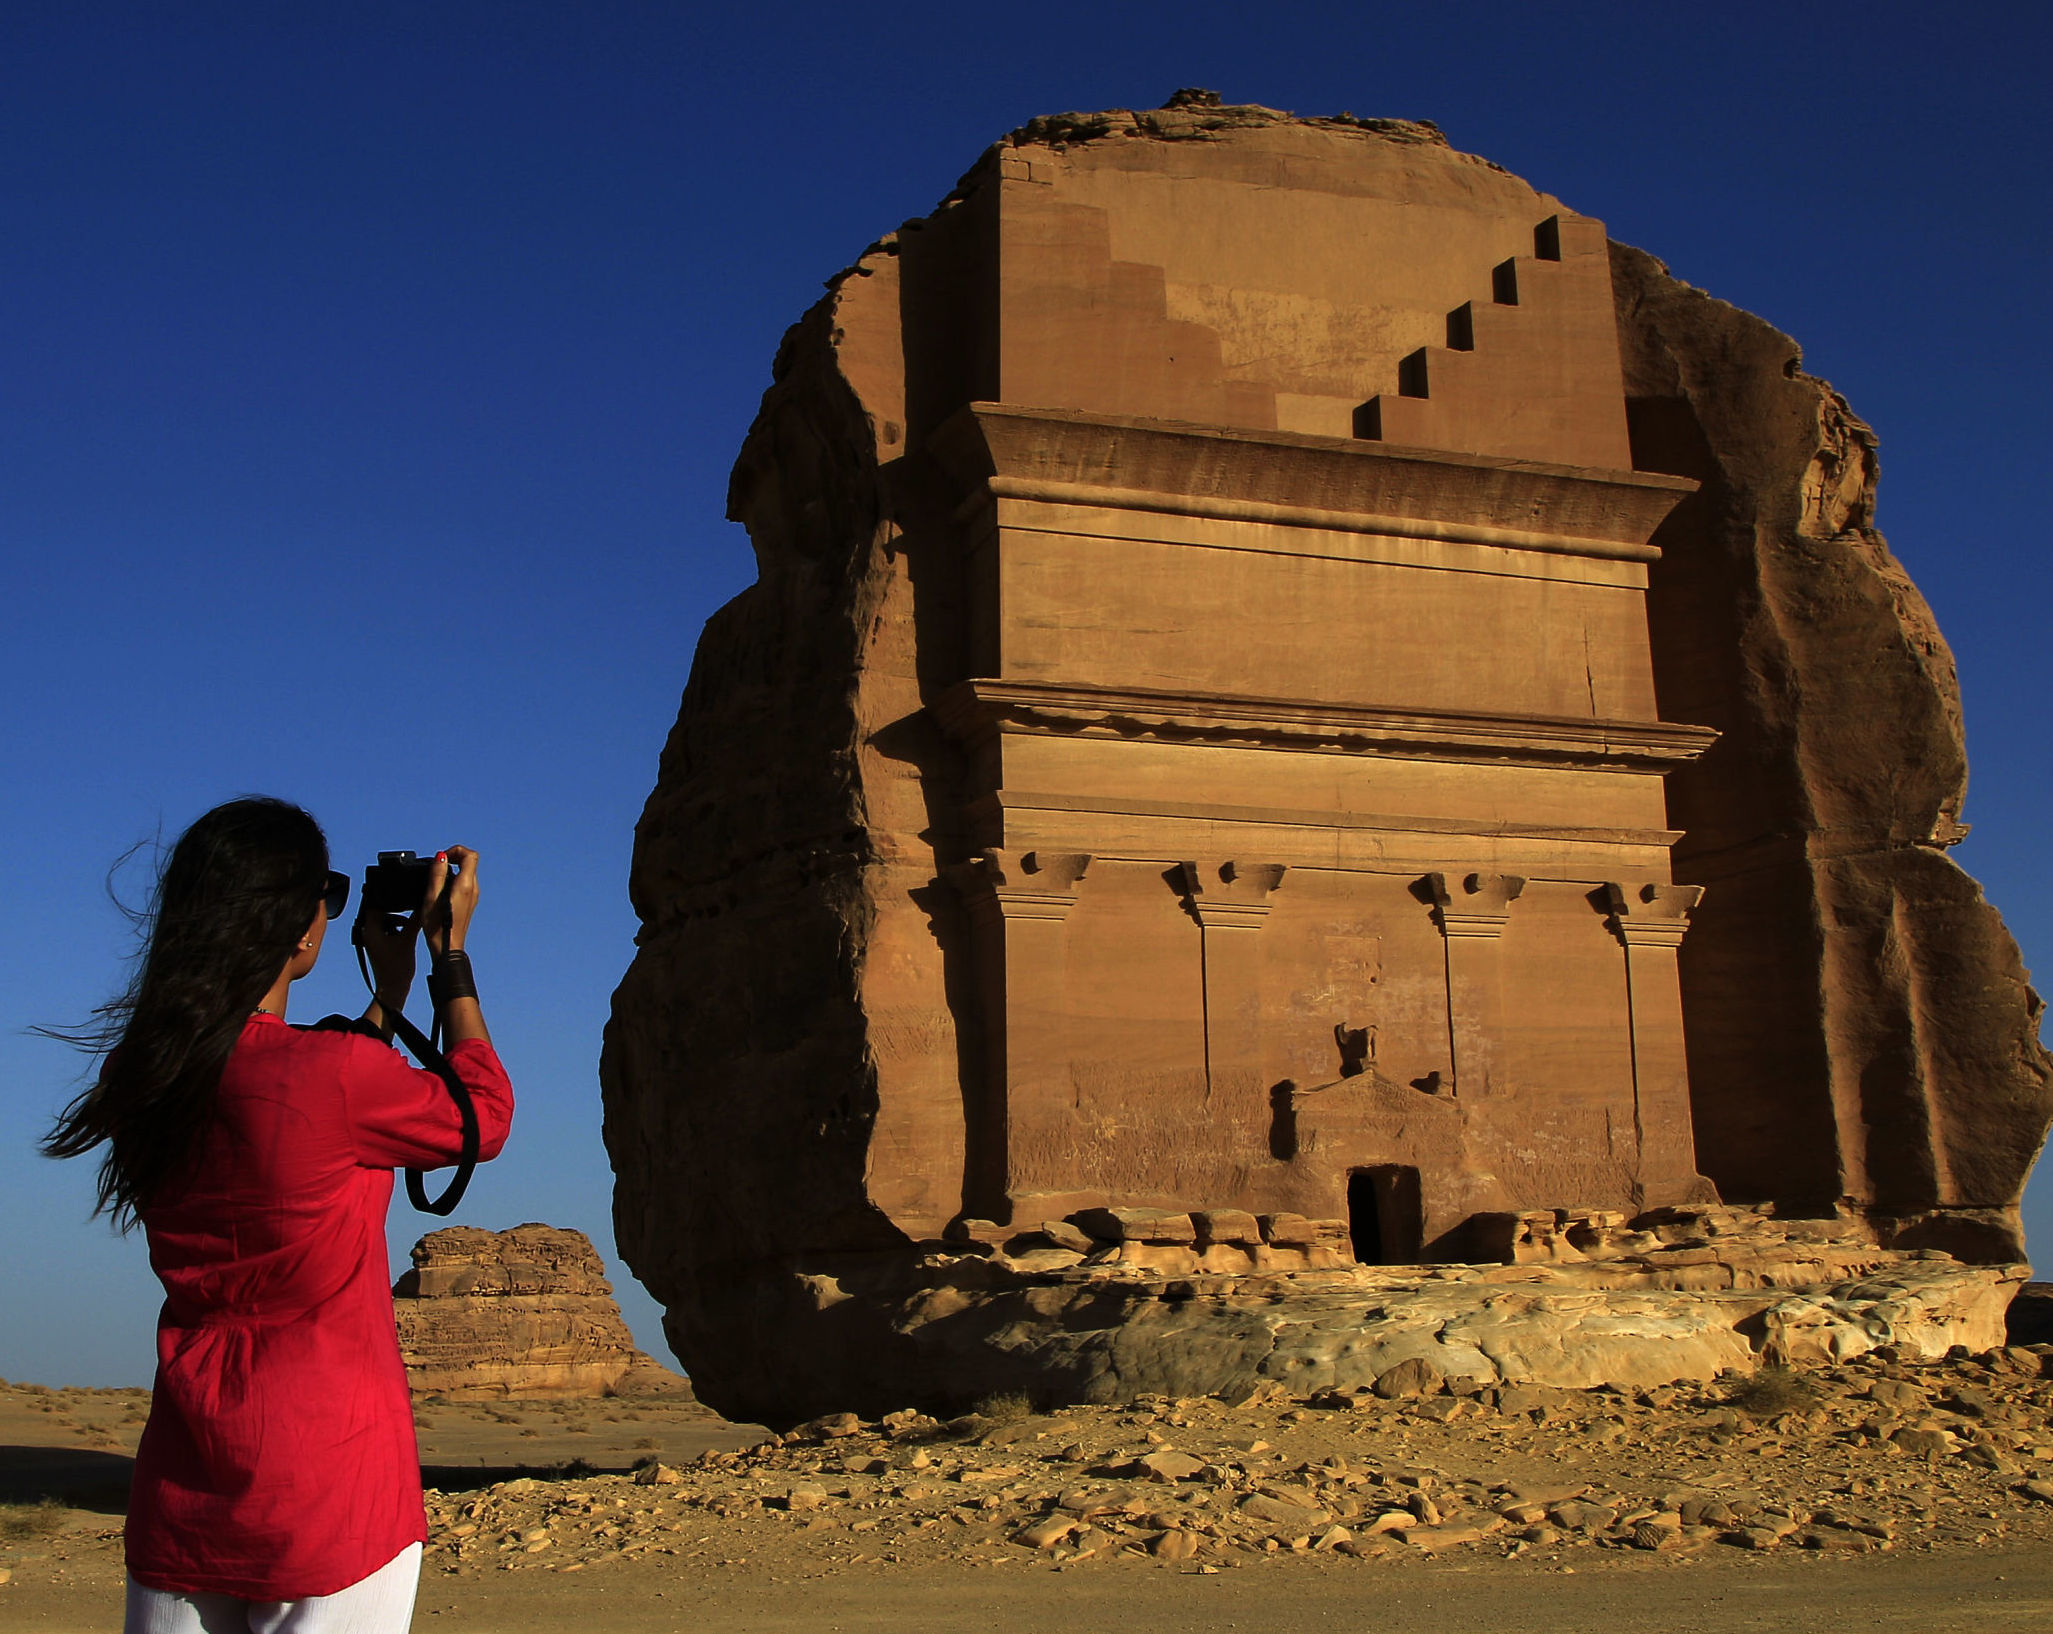 In this photograph made on Thursday, May 10, 2012, a foreign tourist visits the Abu Lawha, the largest Nabataean tomb at the desert archaeological site of Madain Saleh, in Al Ula city, 1043 km (648 miles) northwest of the capital Riyadh, Saudi Arabia